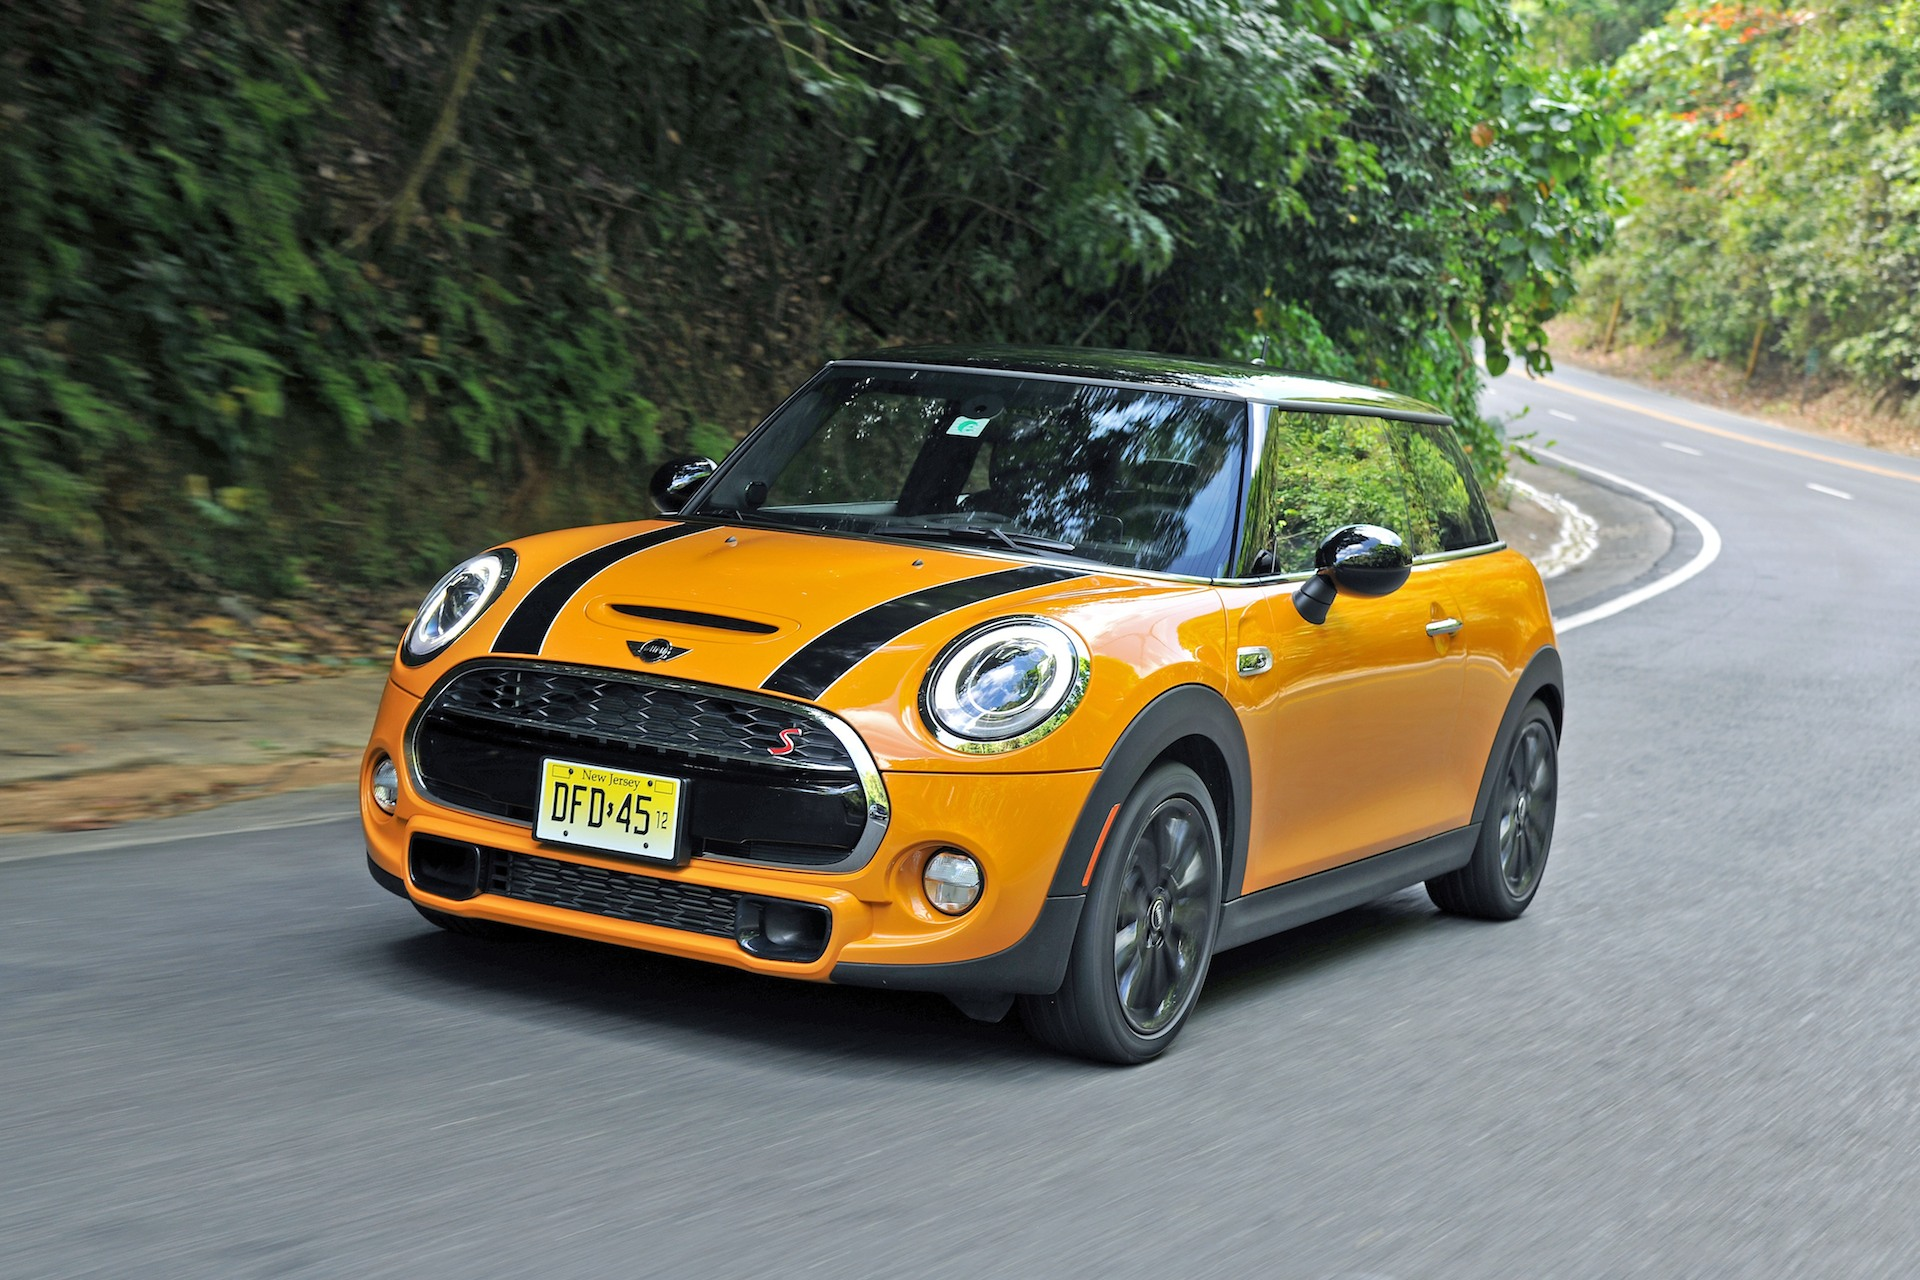 2014 Mini Hardtop first drive review